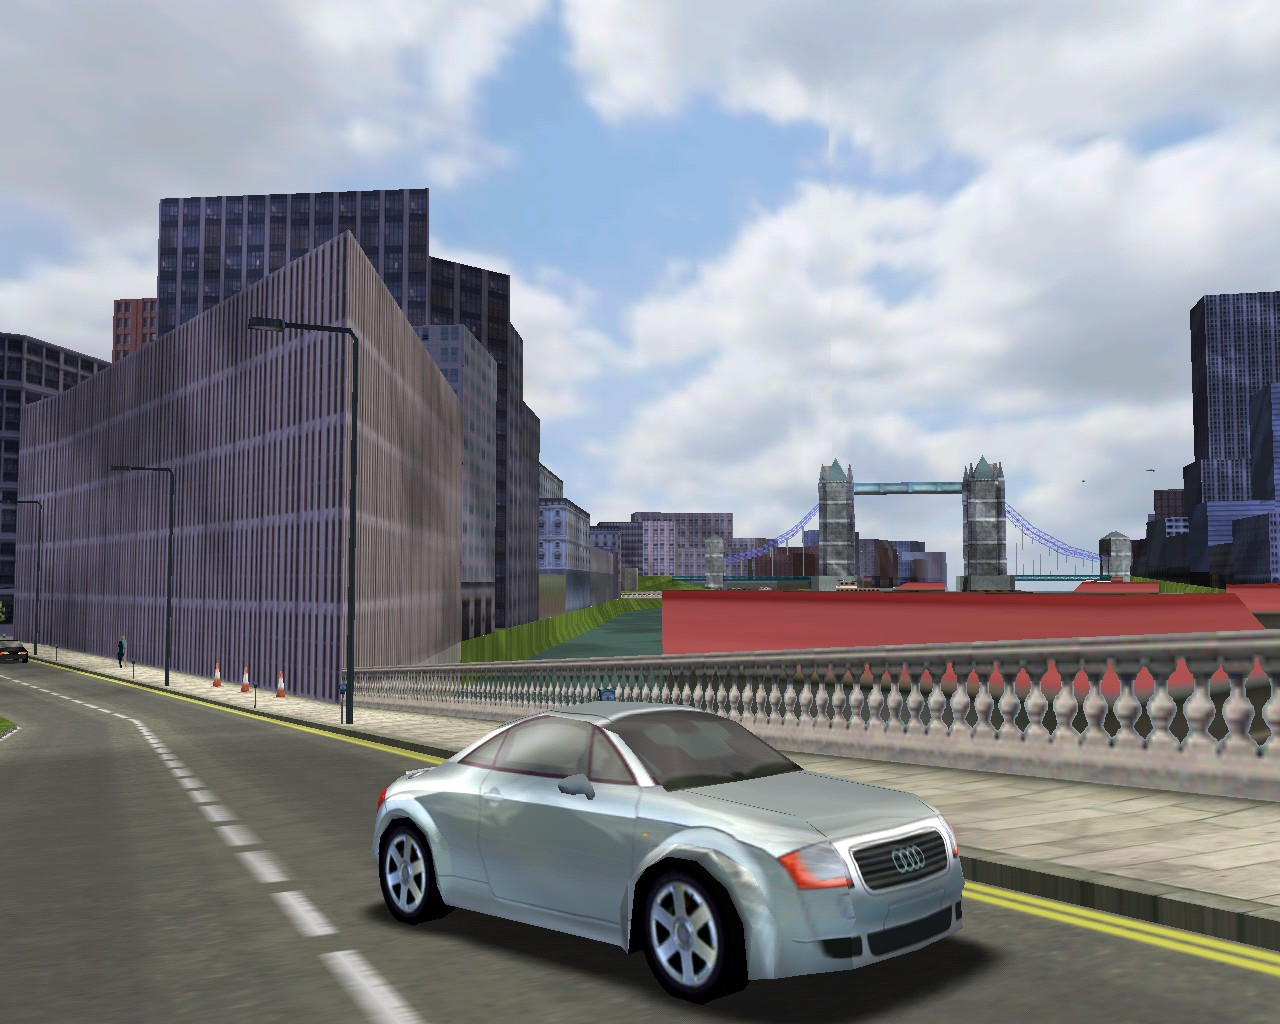 Audi Tt Midtown Madness 2 Wiki Fandom Powered By Wikia